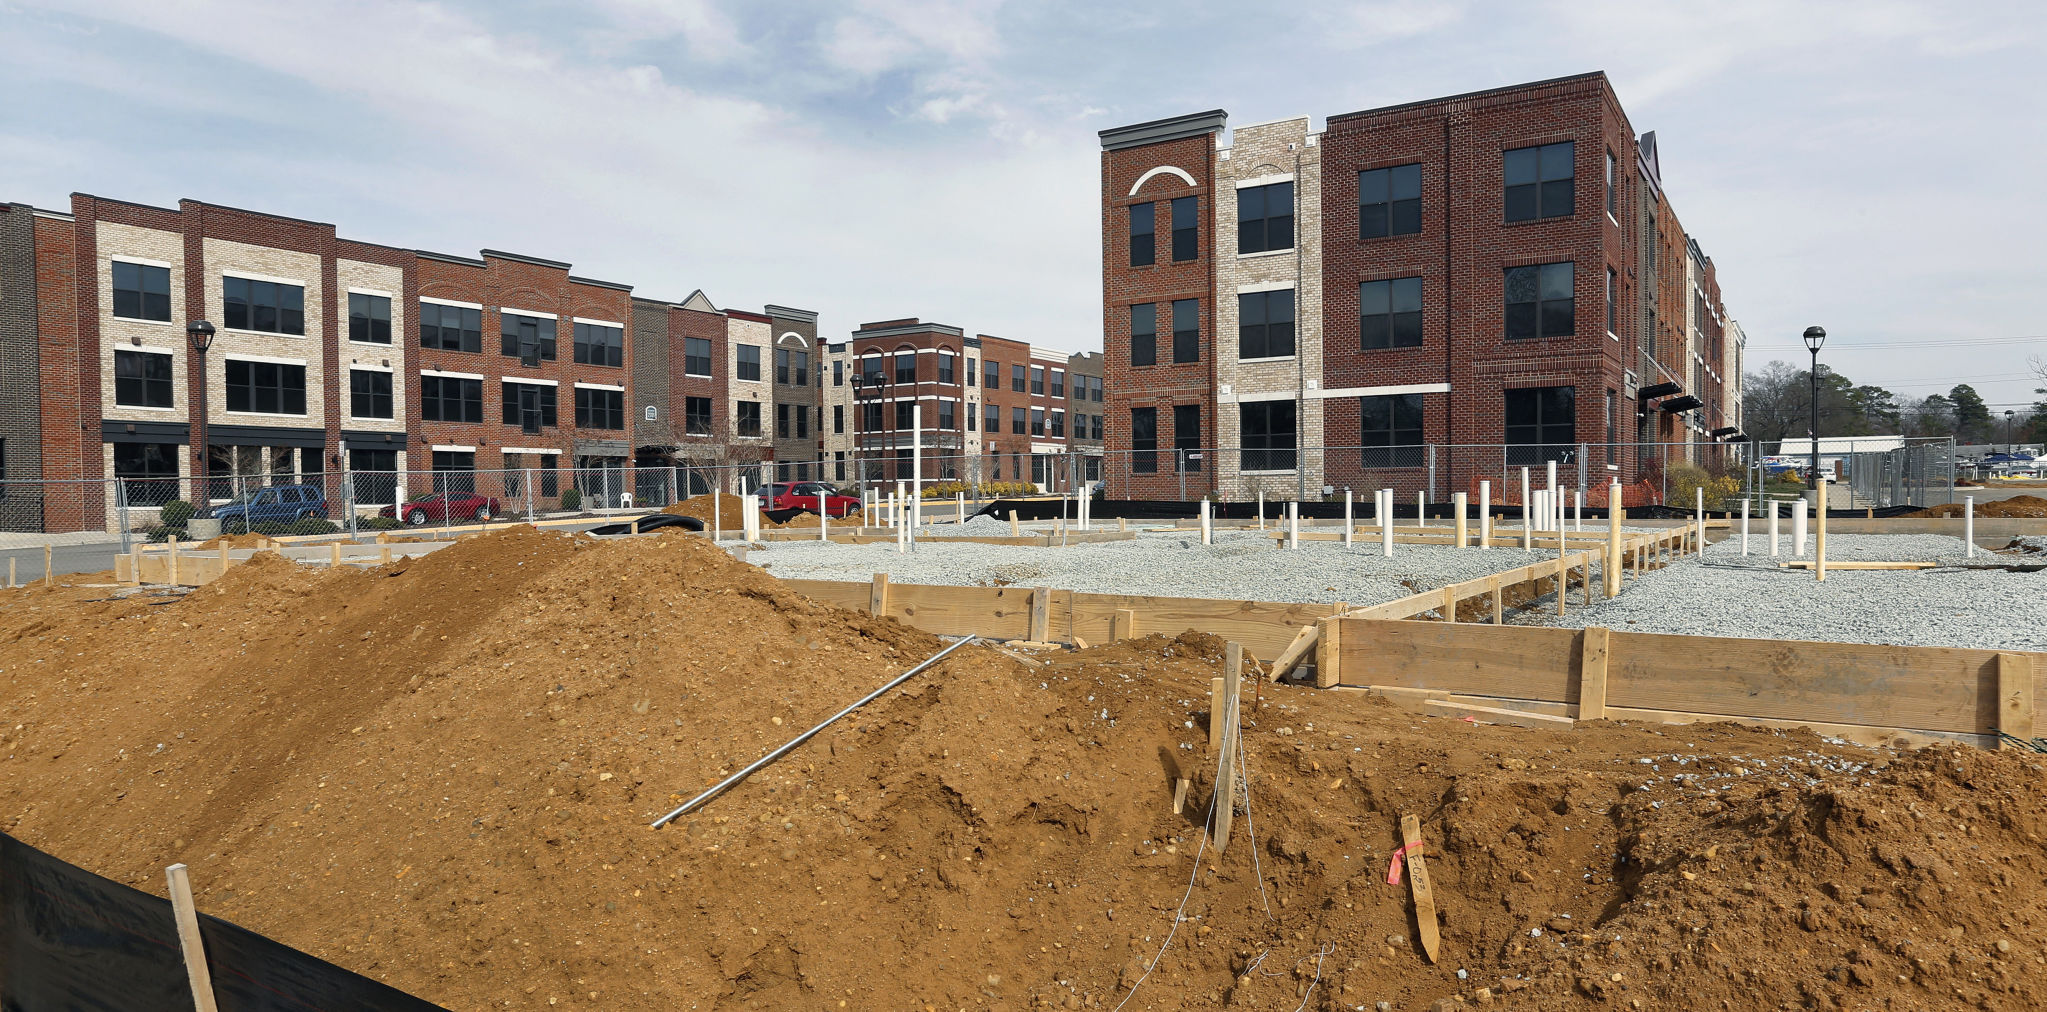 Apartments Coming To Mooreu0027s Lake, Once A Popular Swimming Hole And Dance  Hall In Chester